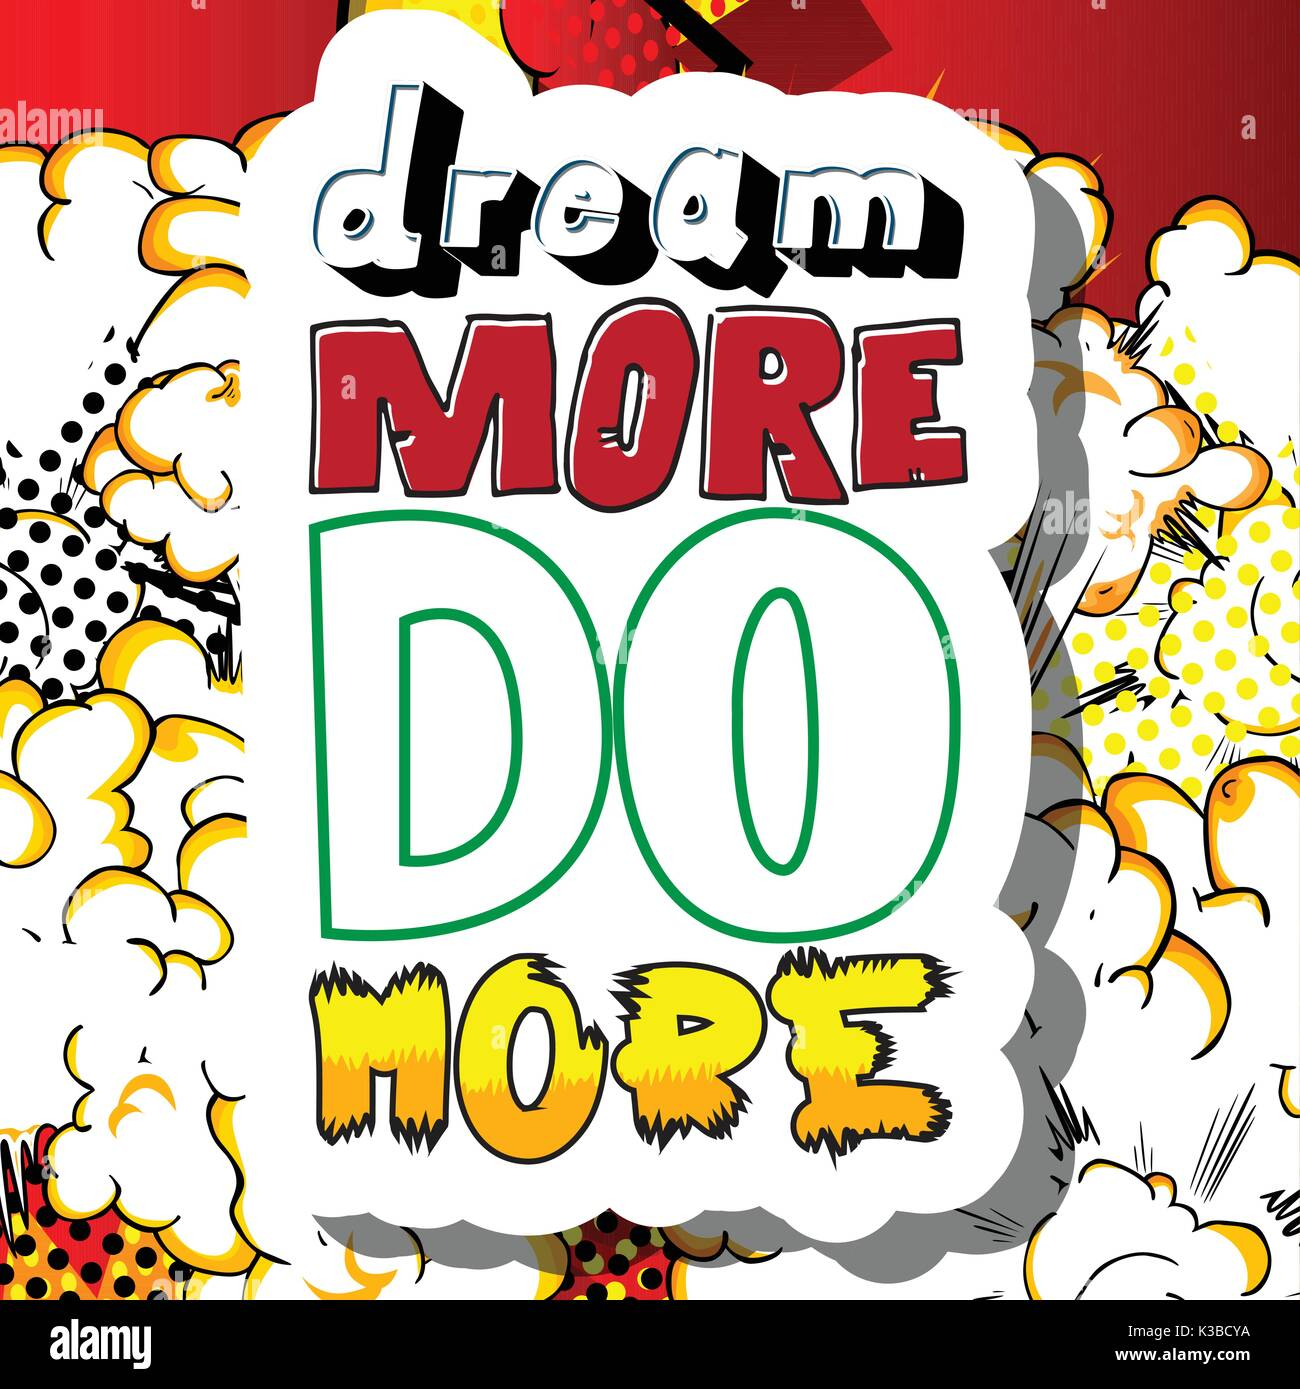 Dream More Do More. Vector illustrated comic book style design. Inspirational, motivational quote. - Stock Vector